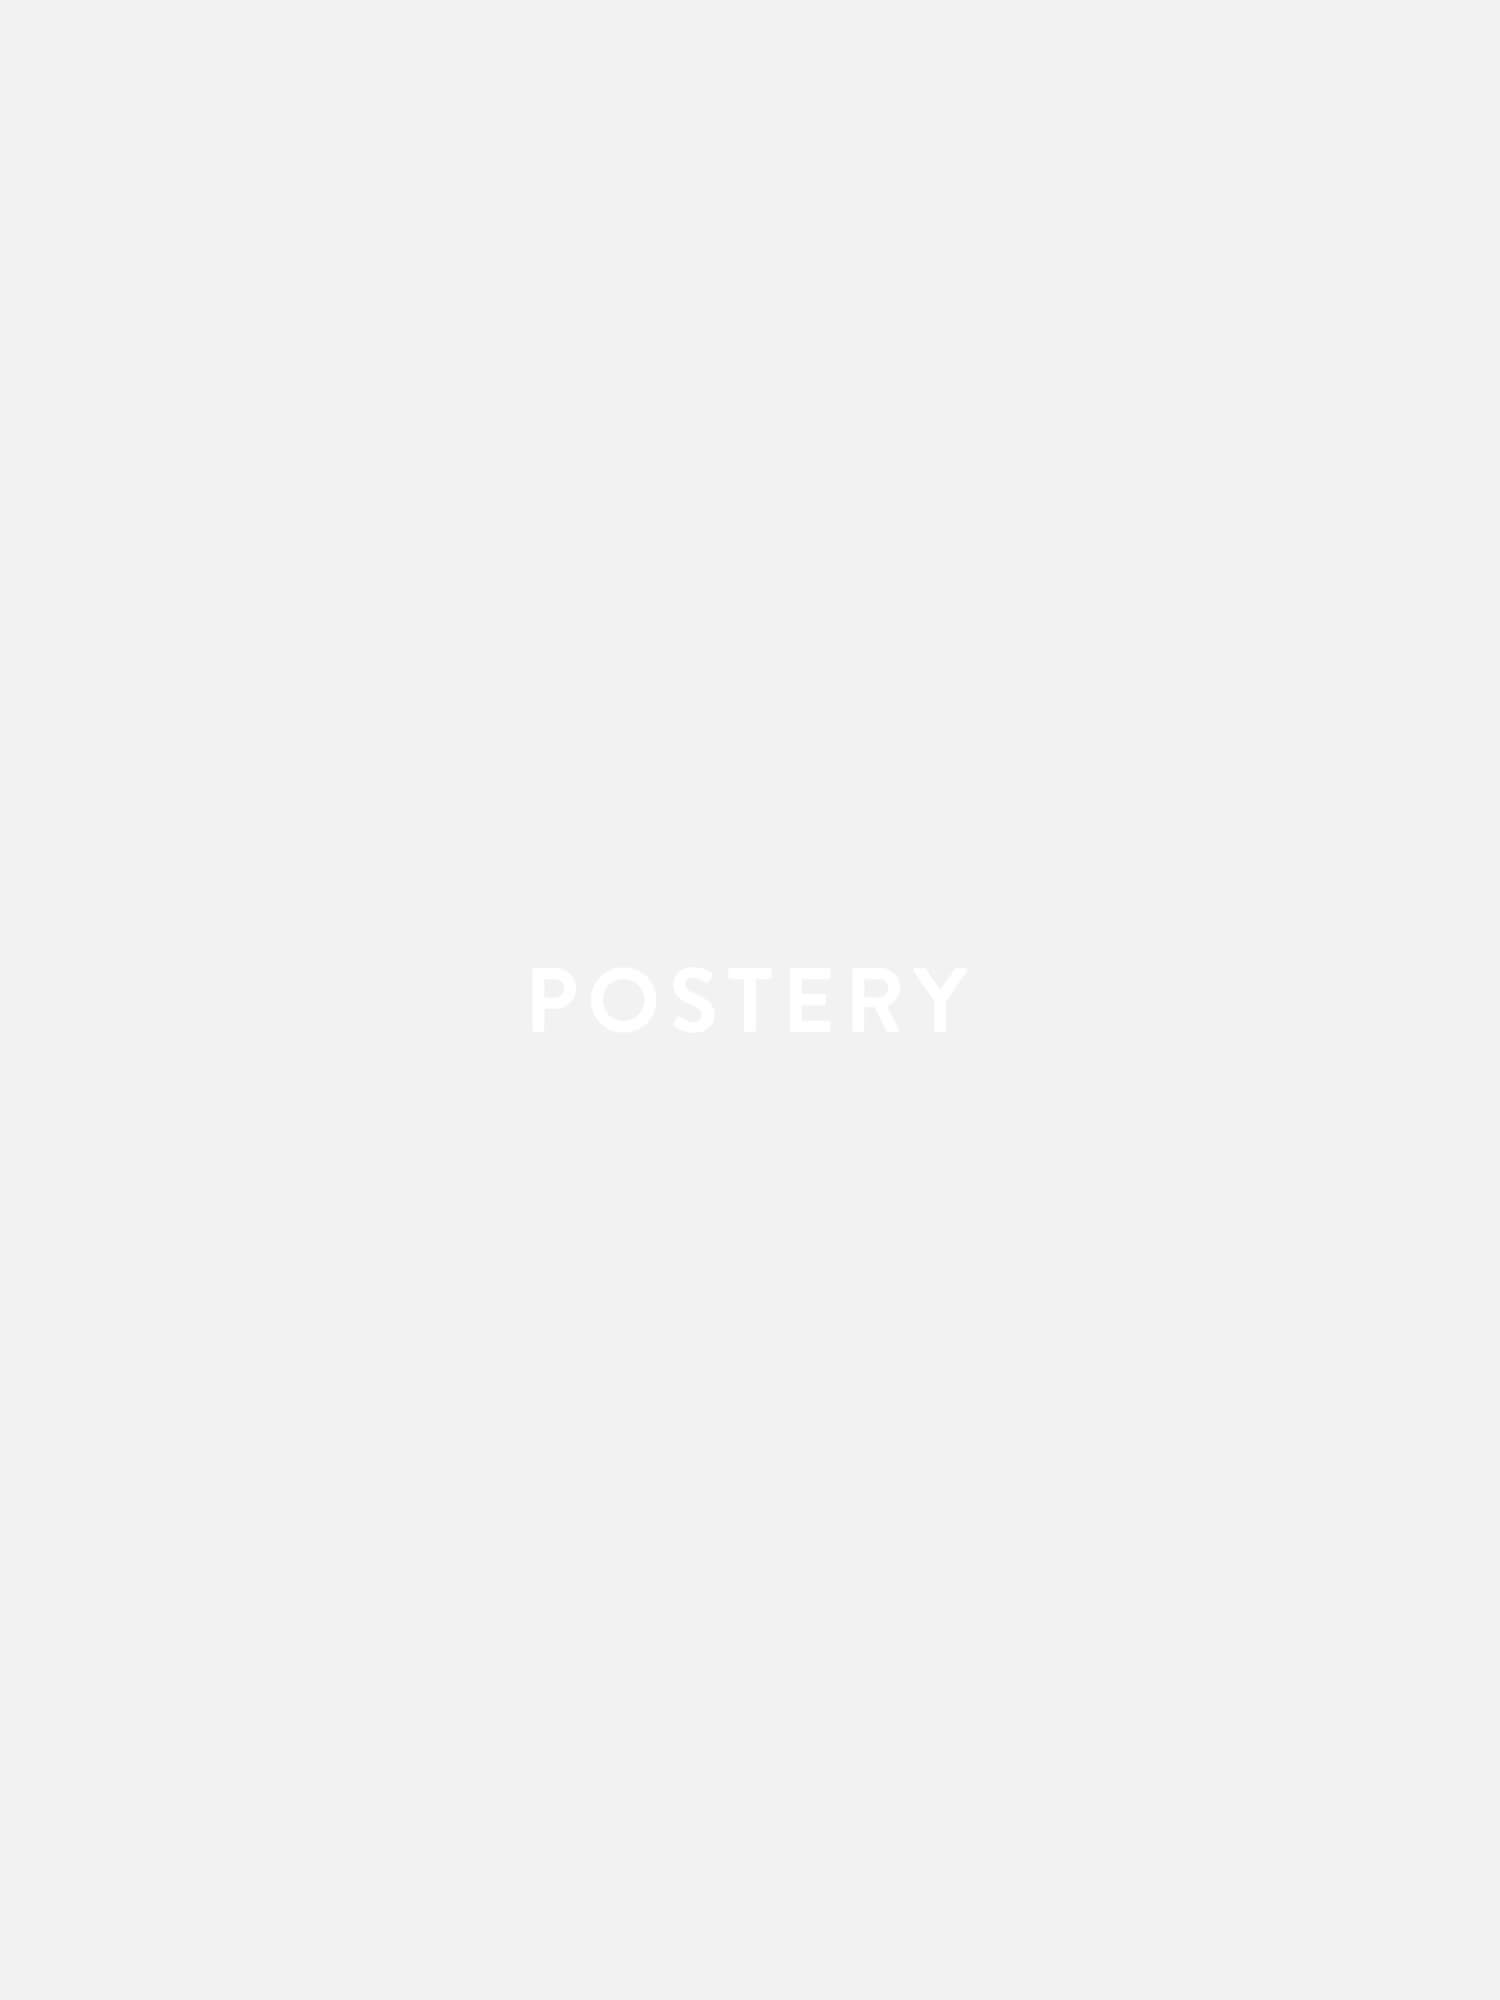 Champagne Tower Poster